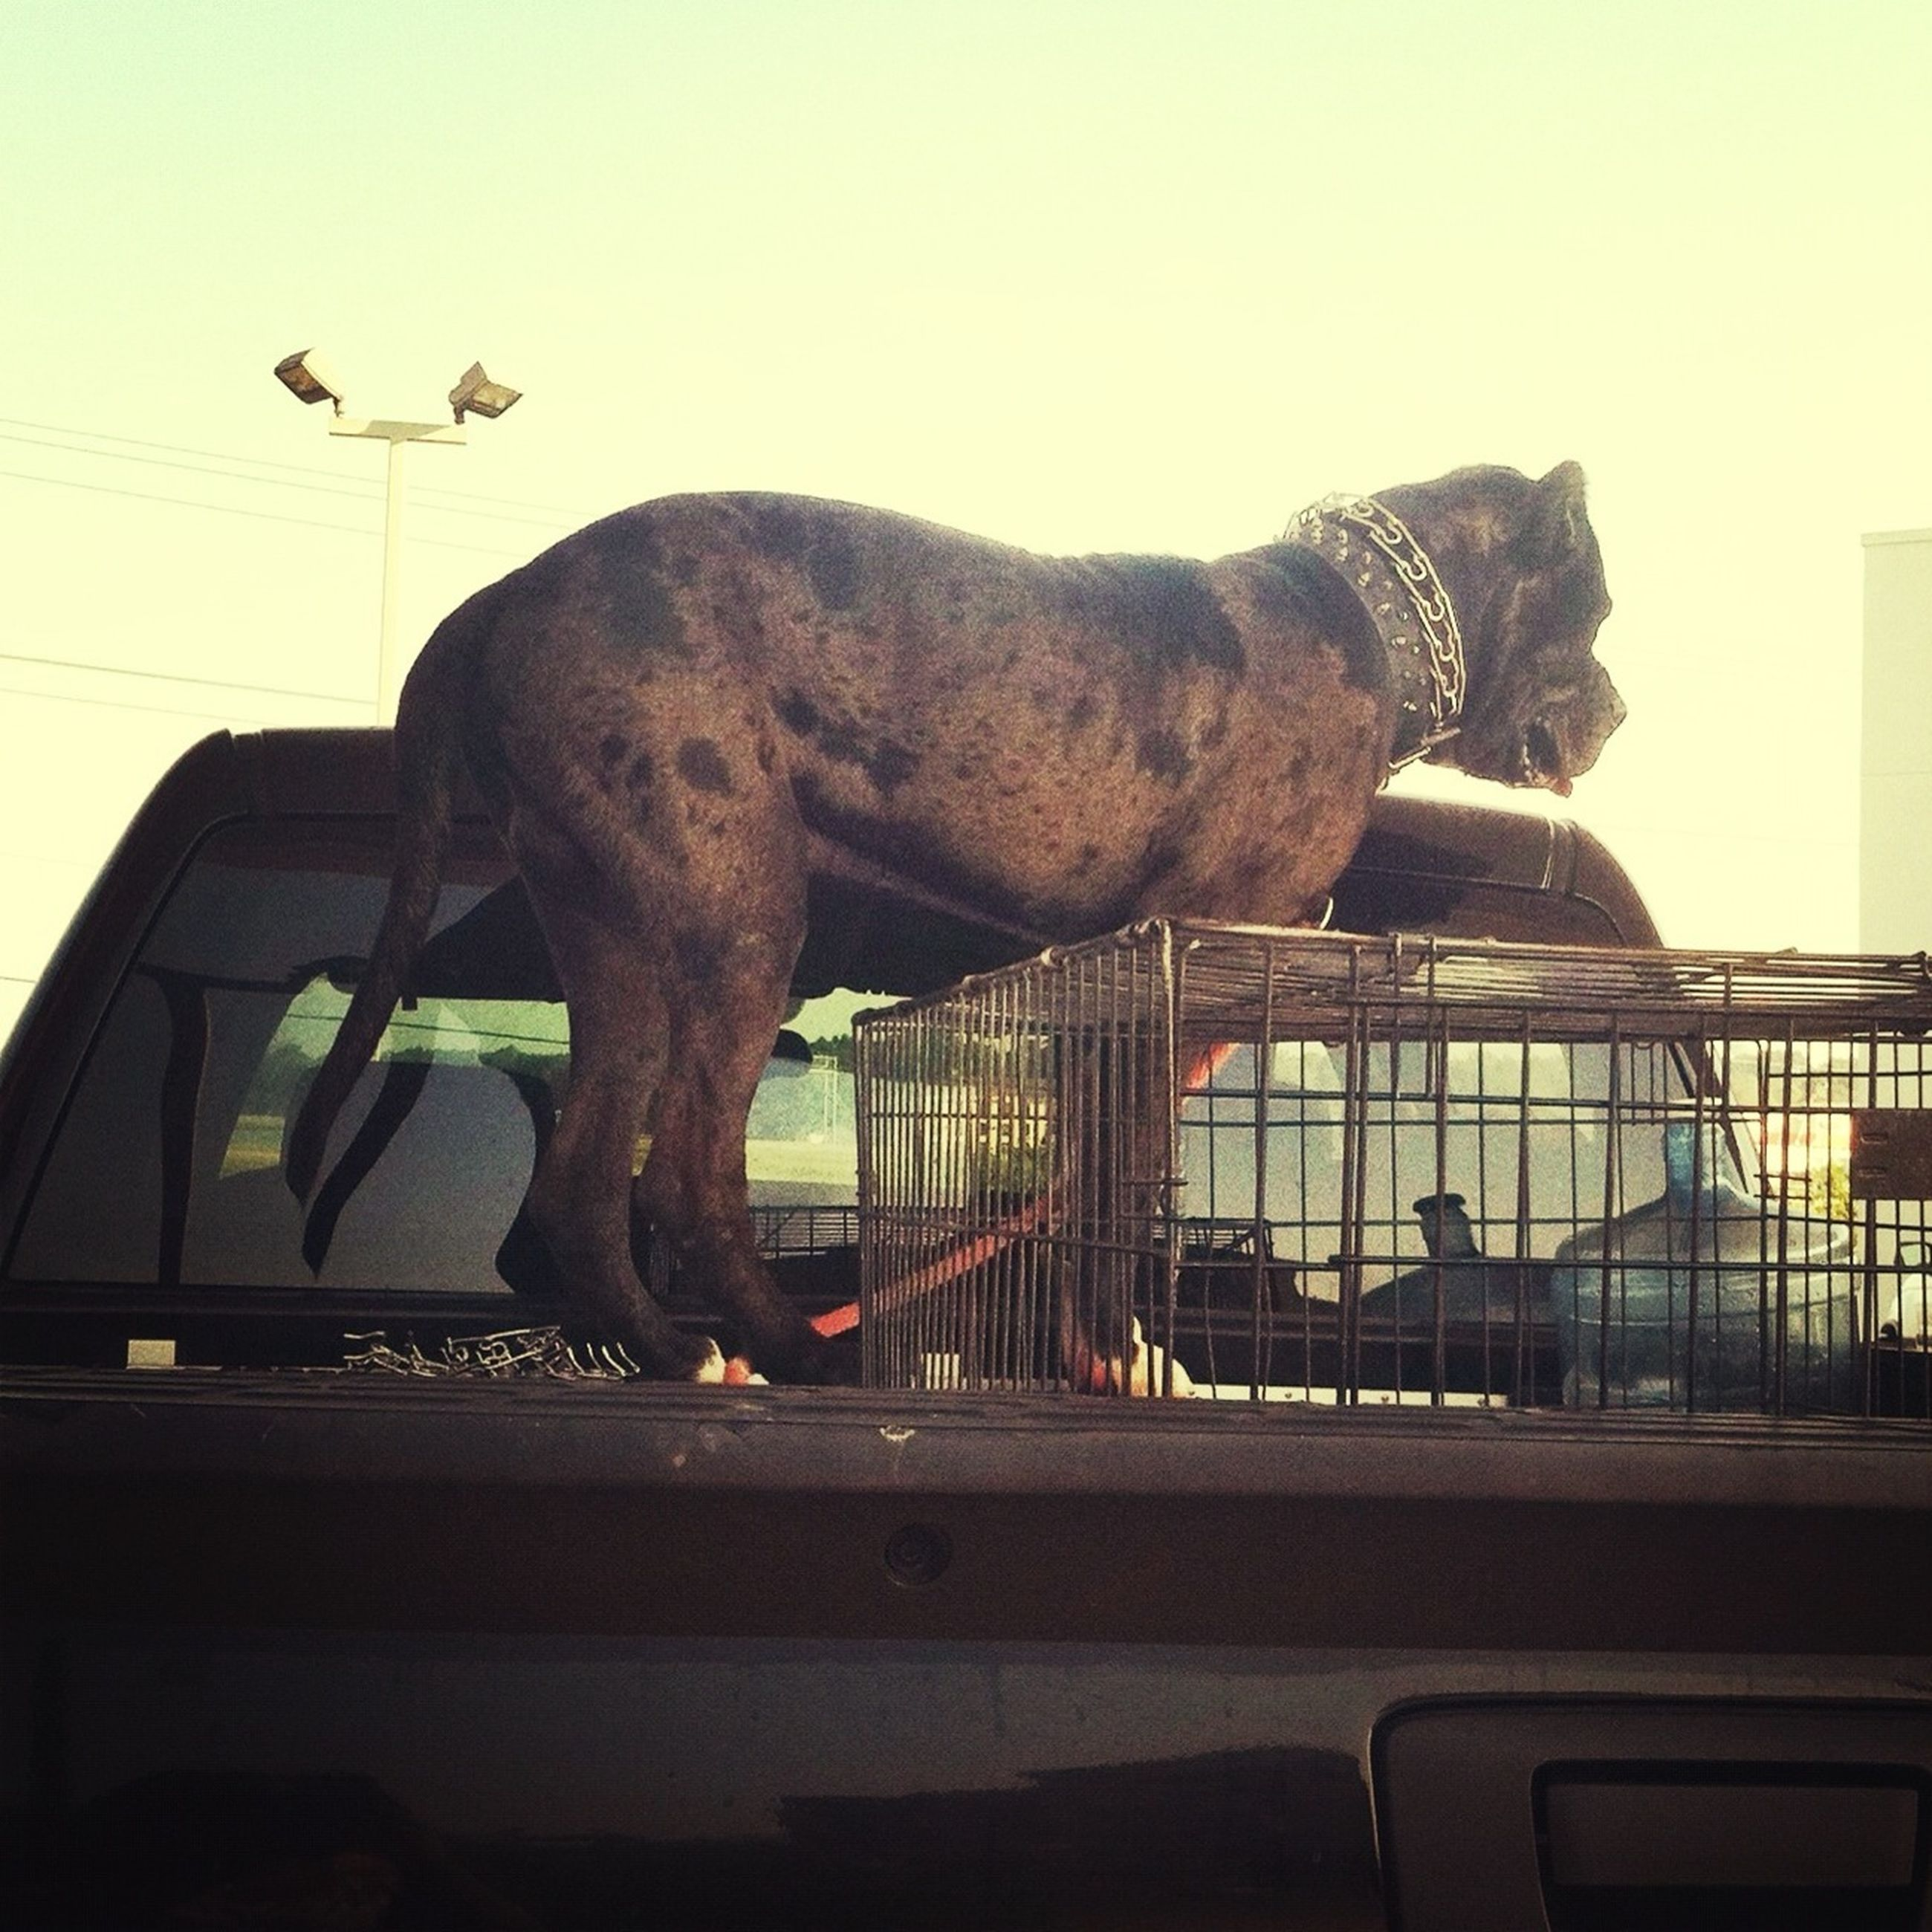 animal themes, one animal, horse, clear sky, built structure, architecture, domestic animals, building exterior, low angle view, mammal, side view, transportation, animal representation, wildlife, statue, outdoors, no people, sculpture, day, sky